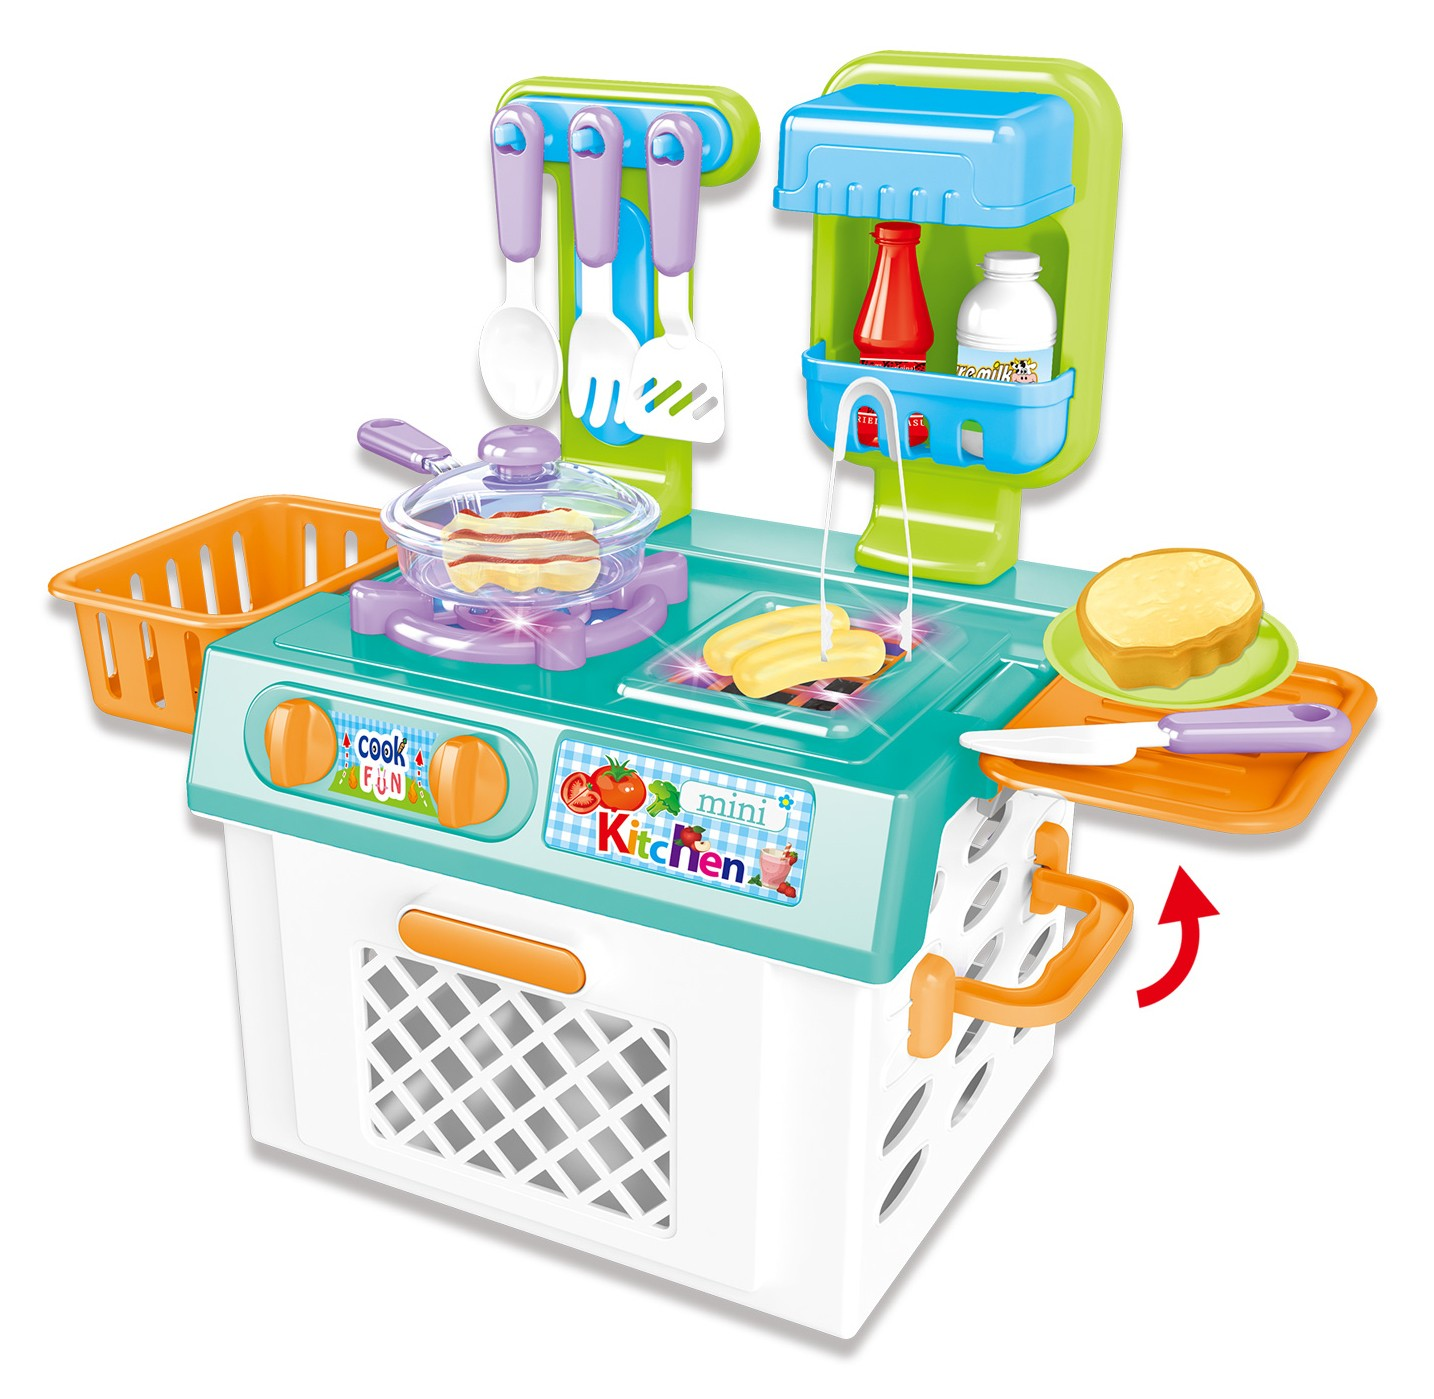 Mini Kitchen Playset With Sound And Color Changing Lights For Realistic Cooking